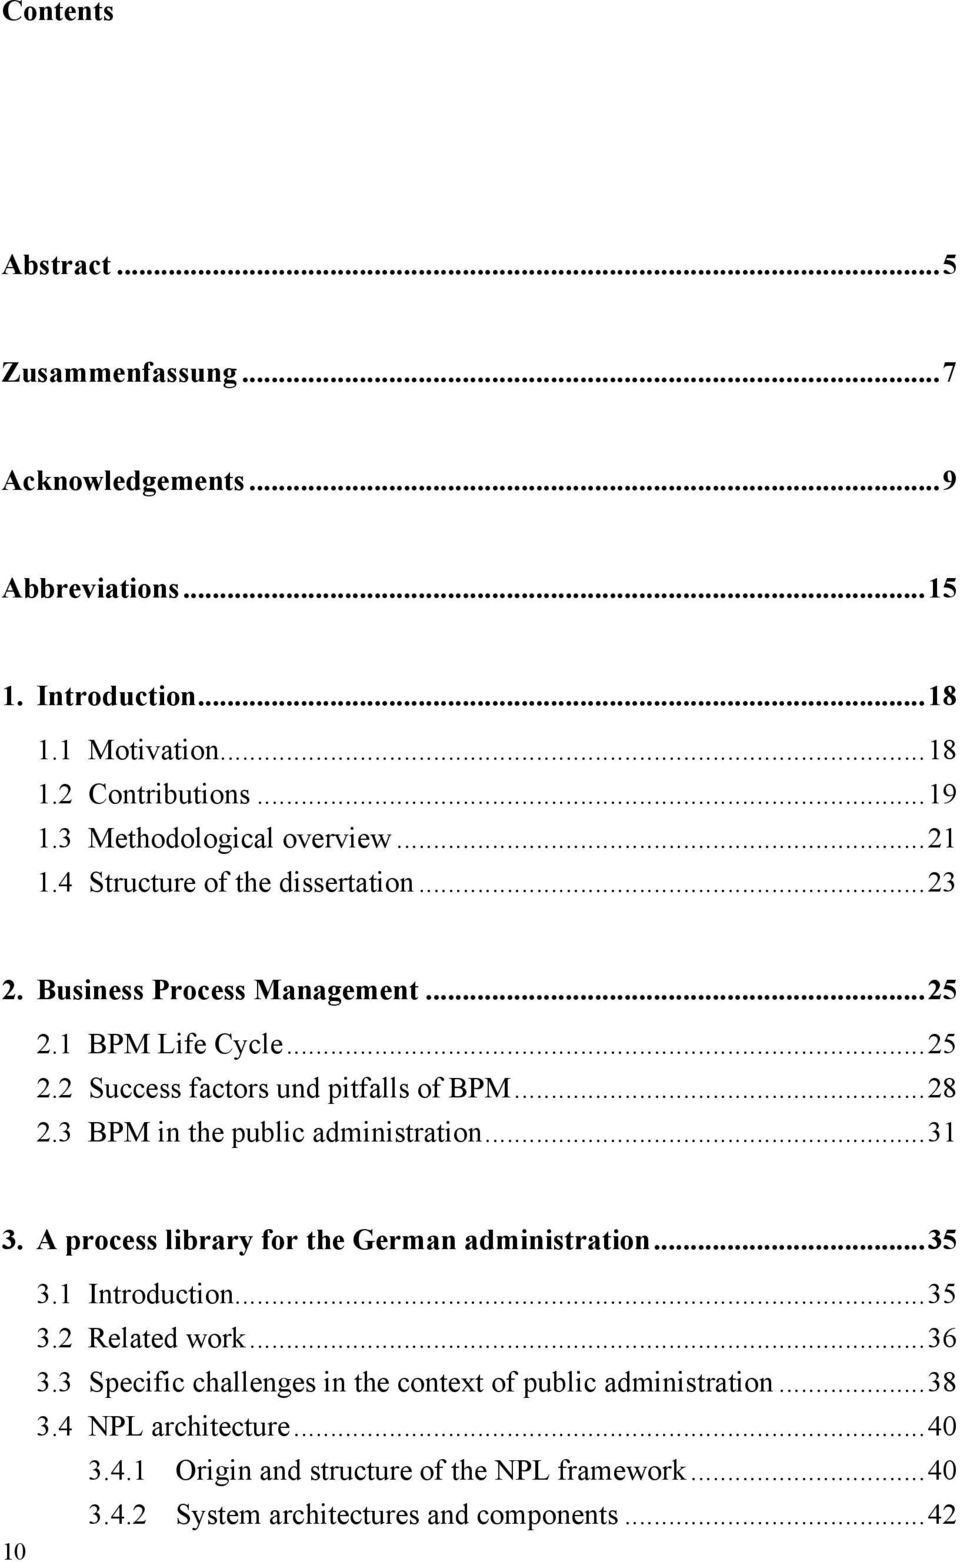 .. 28 2.3 BPM in the public administration... 31 3. A process library for the German administration... 35 3.1 Introduction... 35 3.2 Related work... 36 3.